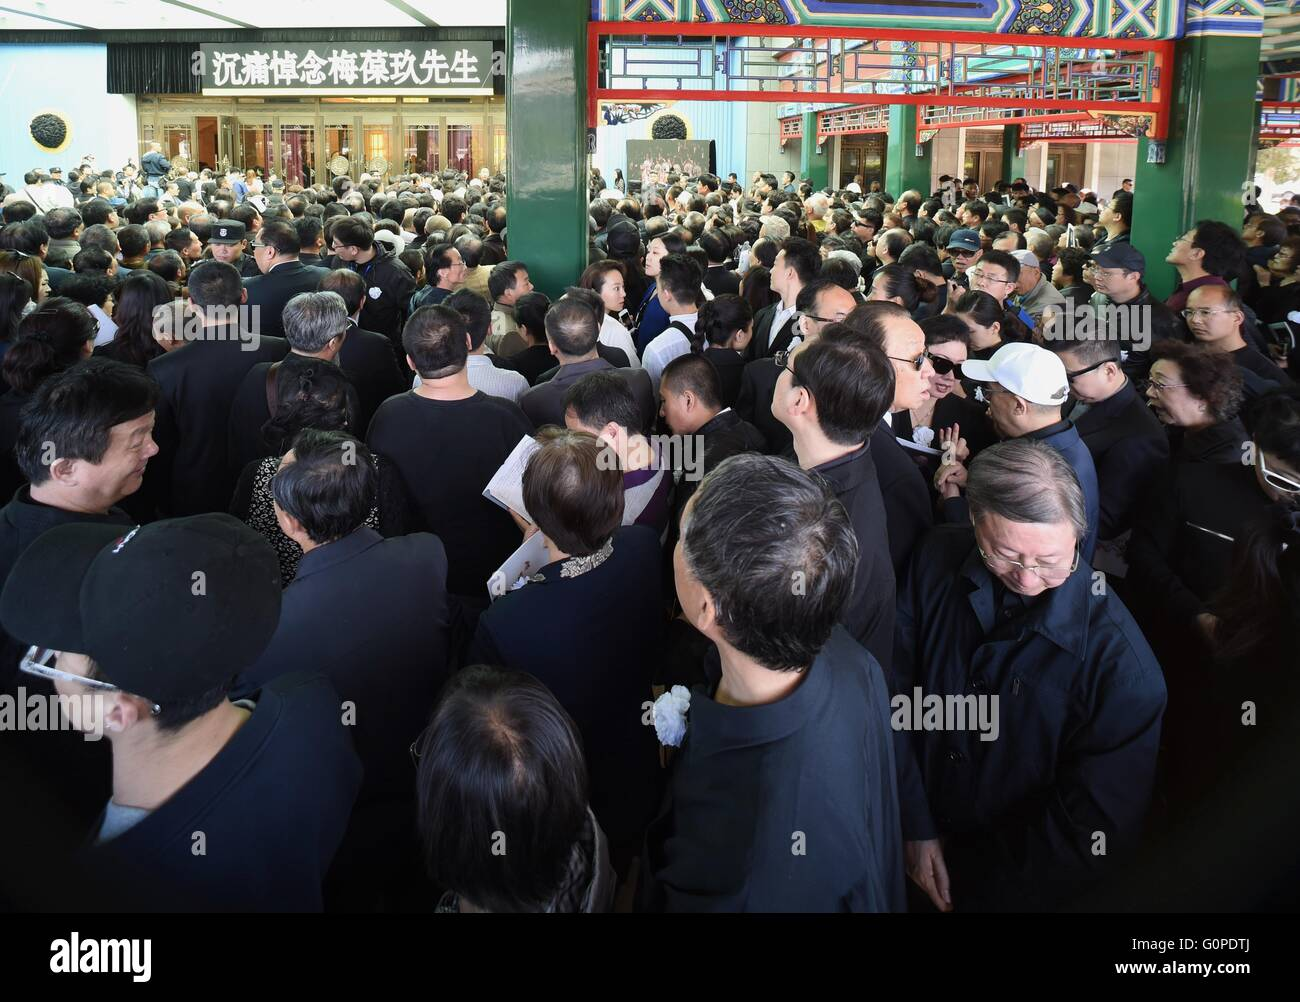 Beijing, China. 3rd May, 2016. People attend the farewell ceremony of famous Peking Opera performer Mei Baojiu at - Stock Image